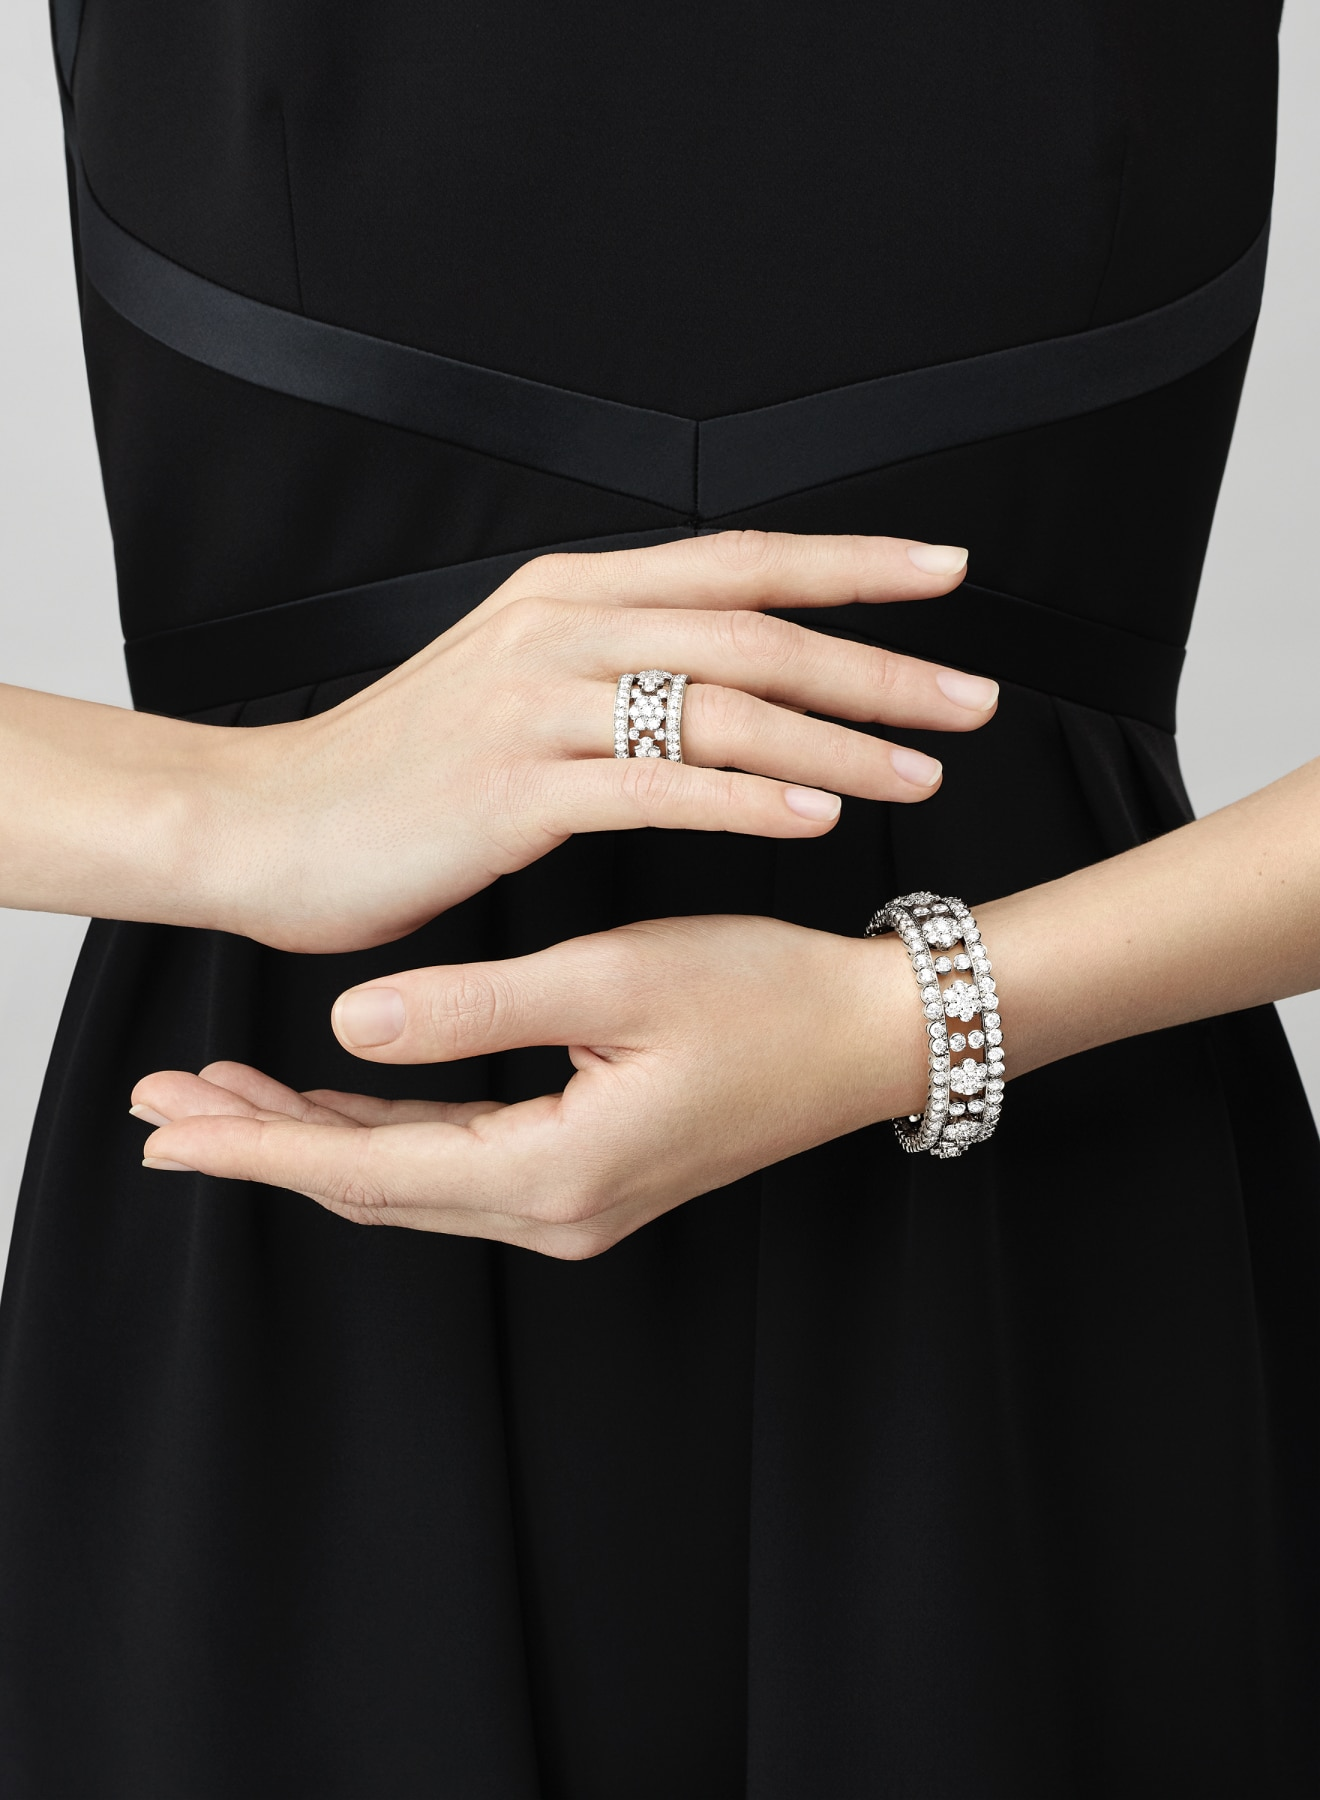 Diamond sets collection, ring and bracelet, white gold and diamonds, hand hovering in front of waist, Van Cleef & Arpels